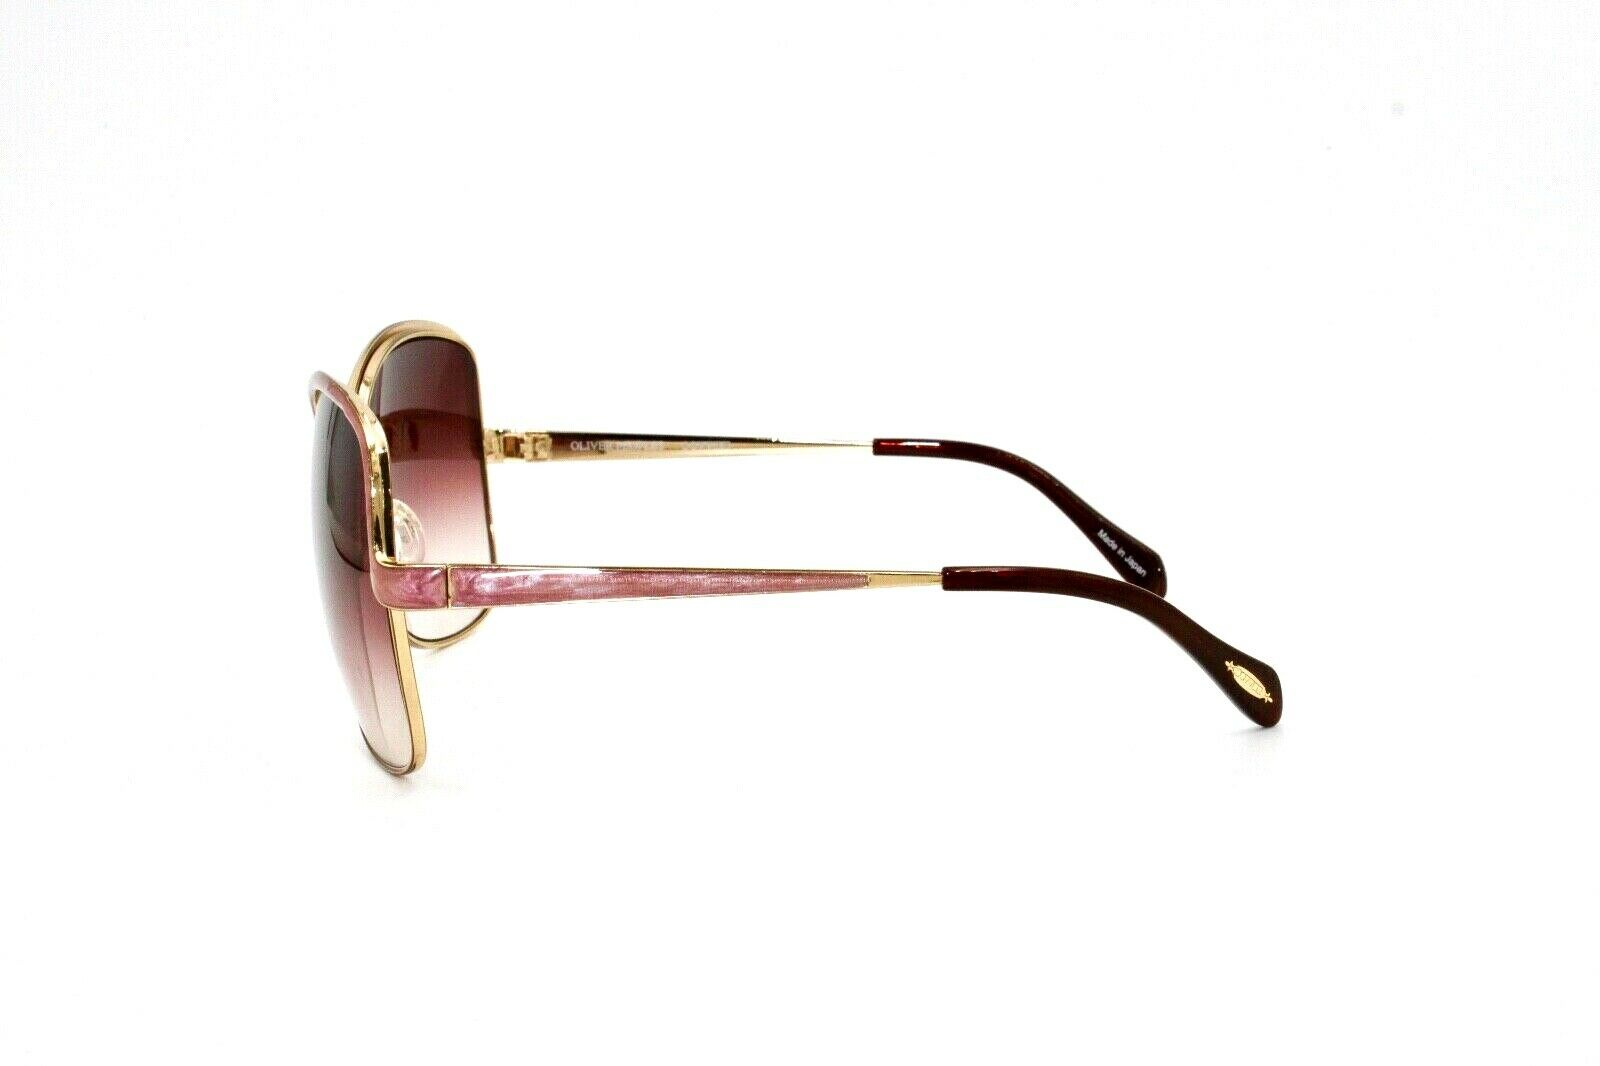 Oliver Peoples Sunglasses 62 16-130 Annice PPG Made in Japan - Mydesigneroptic